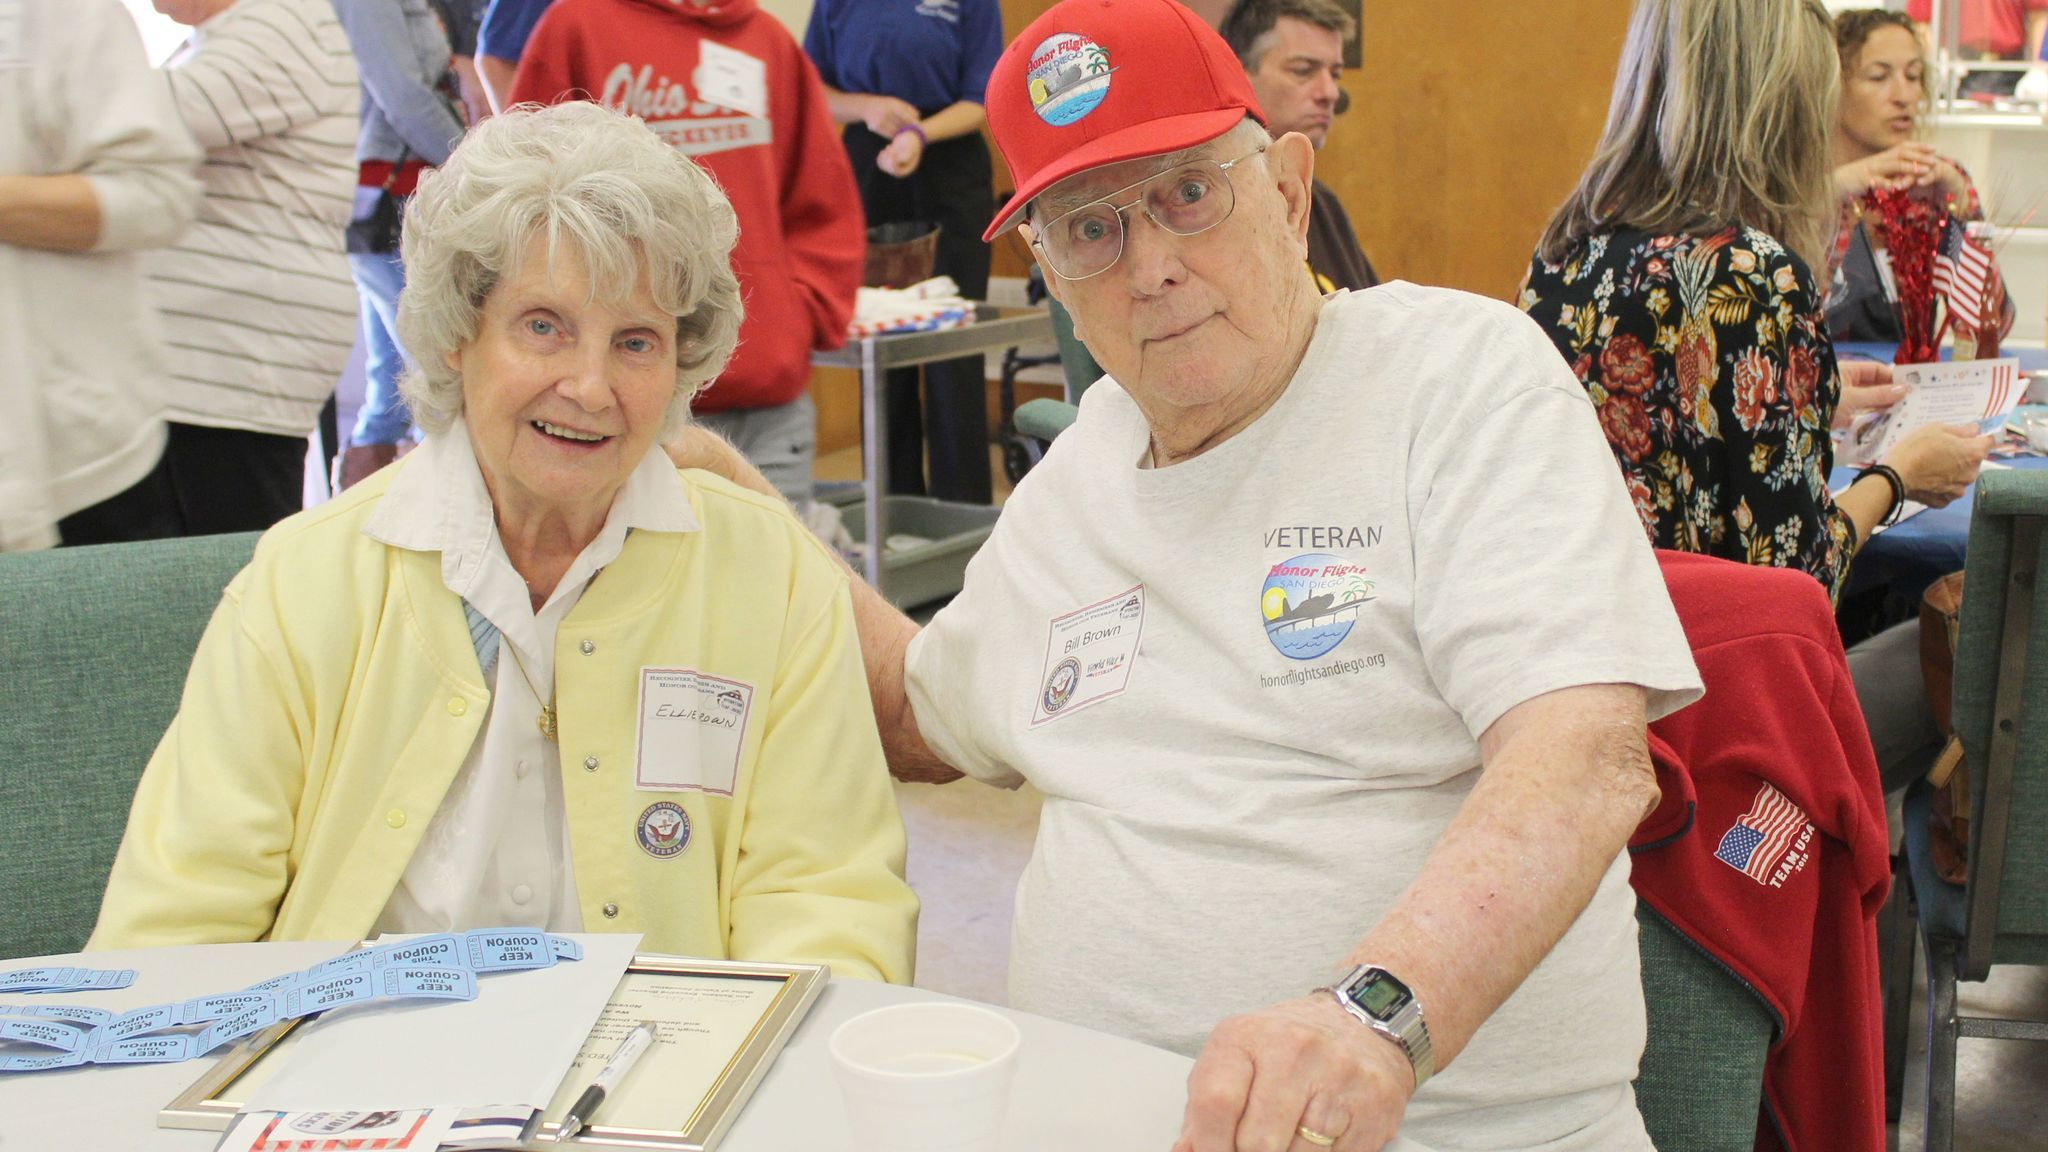 Wearing his Honor Flight T-shirt and cap, World War II Navy veteran Bill Brown sits with his wife Elly.